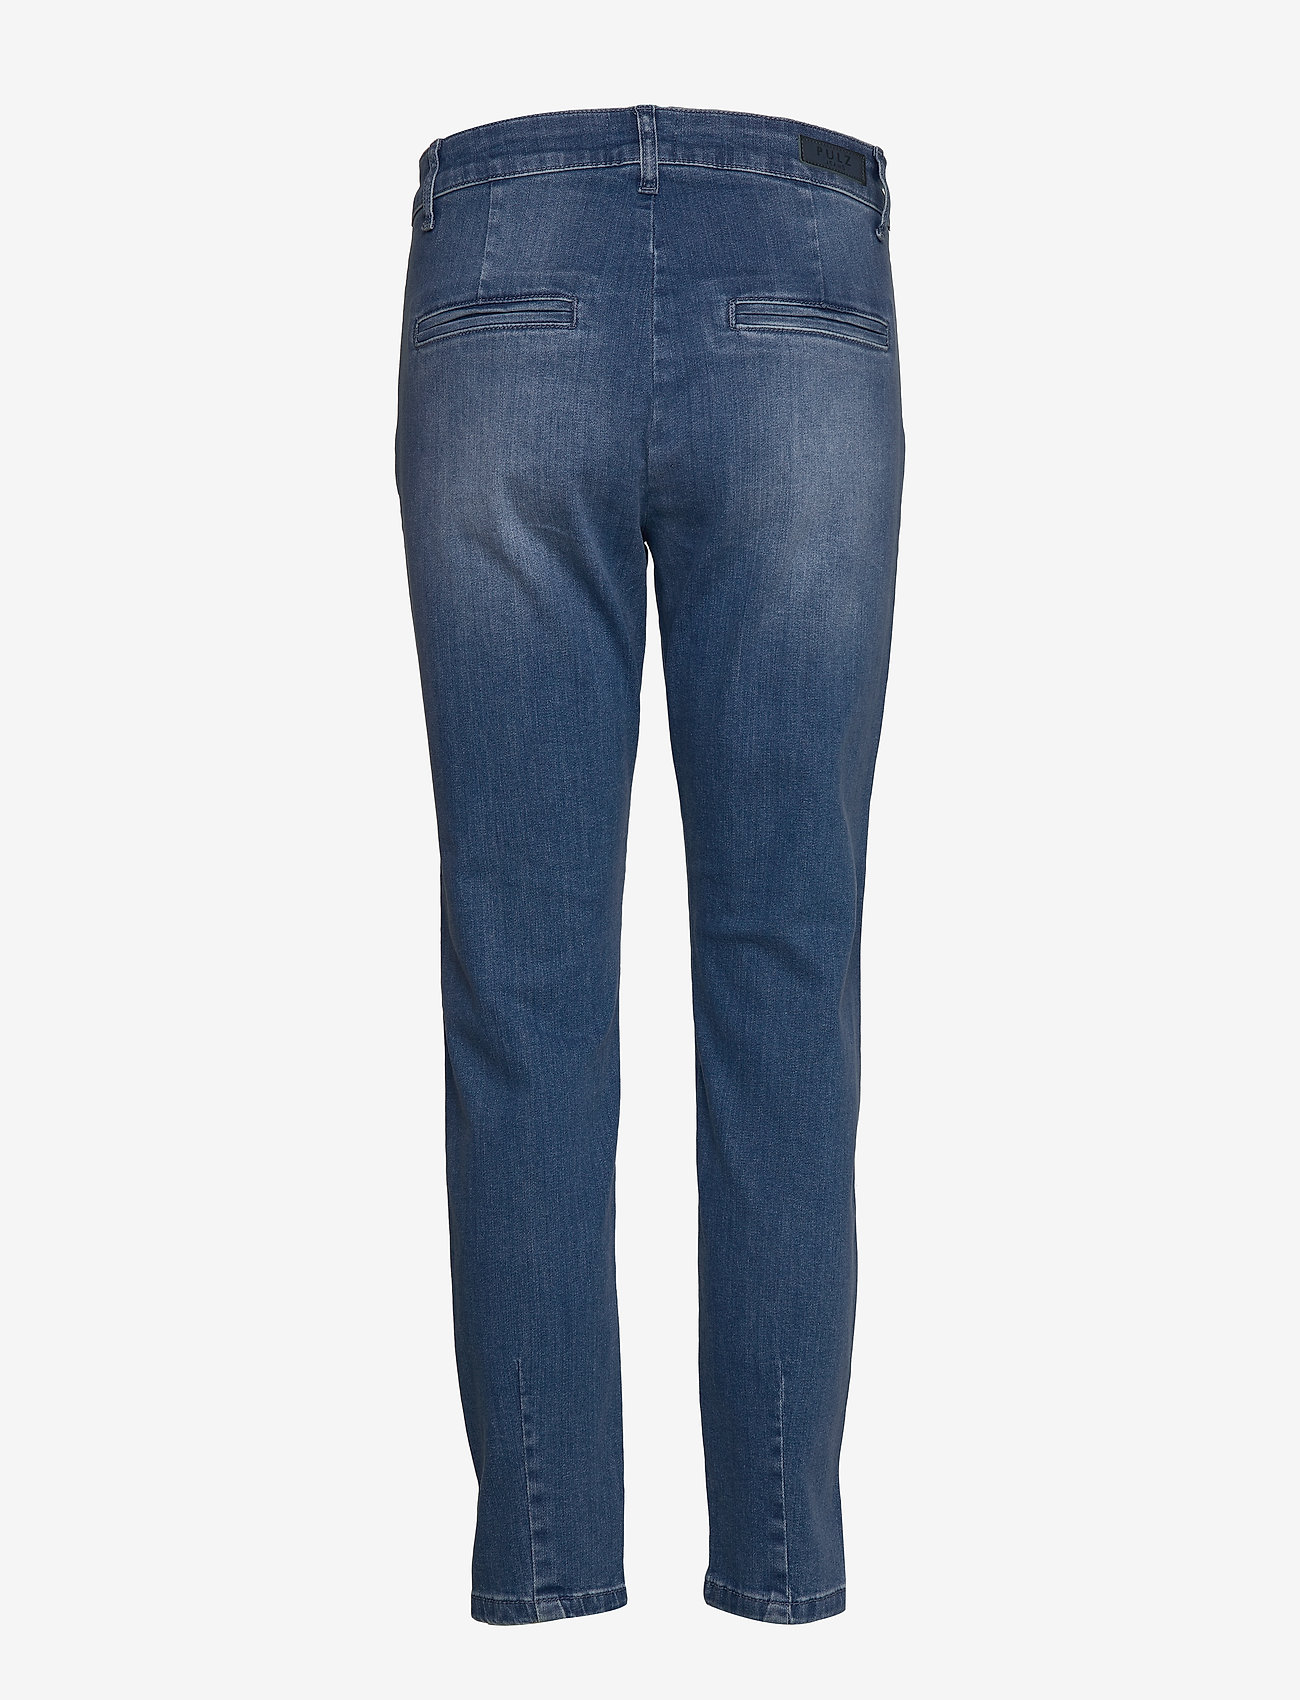 Pulz Jeans - PZCLARA Jeans - slim jeans - medium blue denim - 1